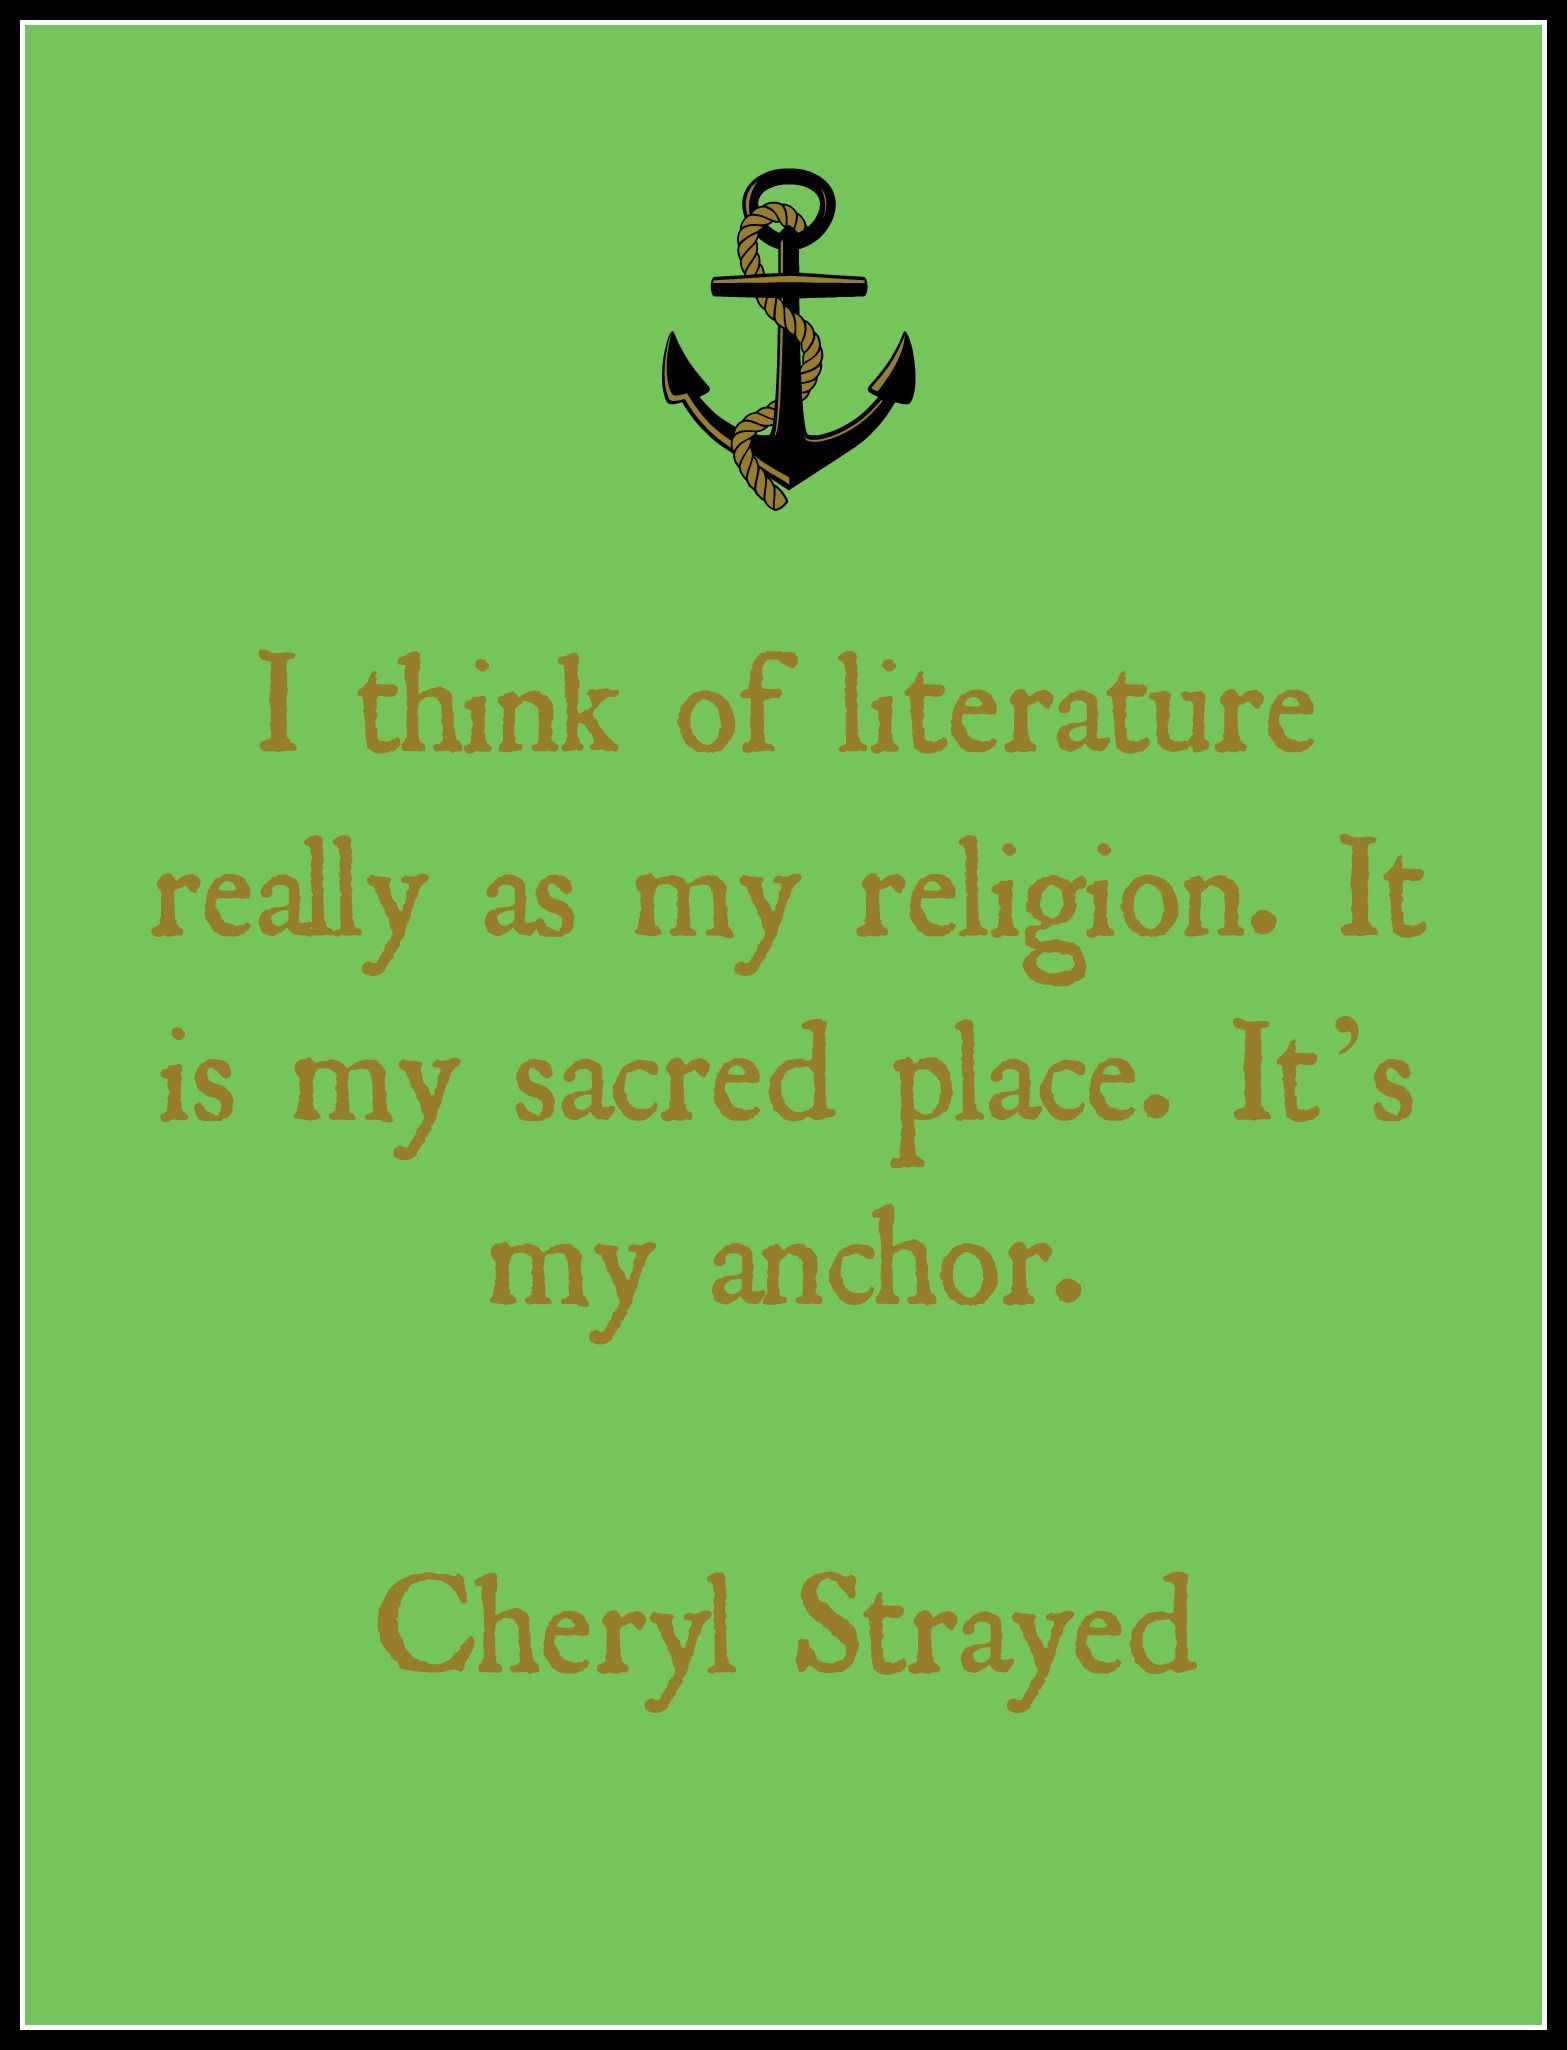 """""""I think of literature really as my religion. It is my sacred place. It's my anchor."""" -Cheryl Strayed Rising to the Occasion of Our Own Lives: An Interview with Cheryl Strayed with Jenn Northington of Book Riot, December 14, 2015."""